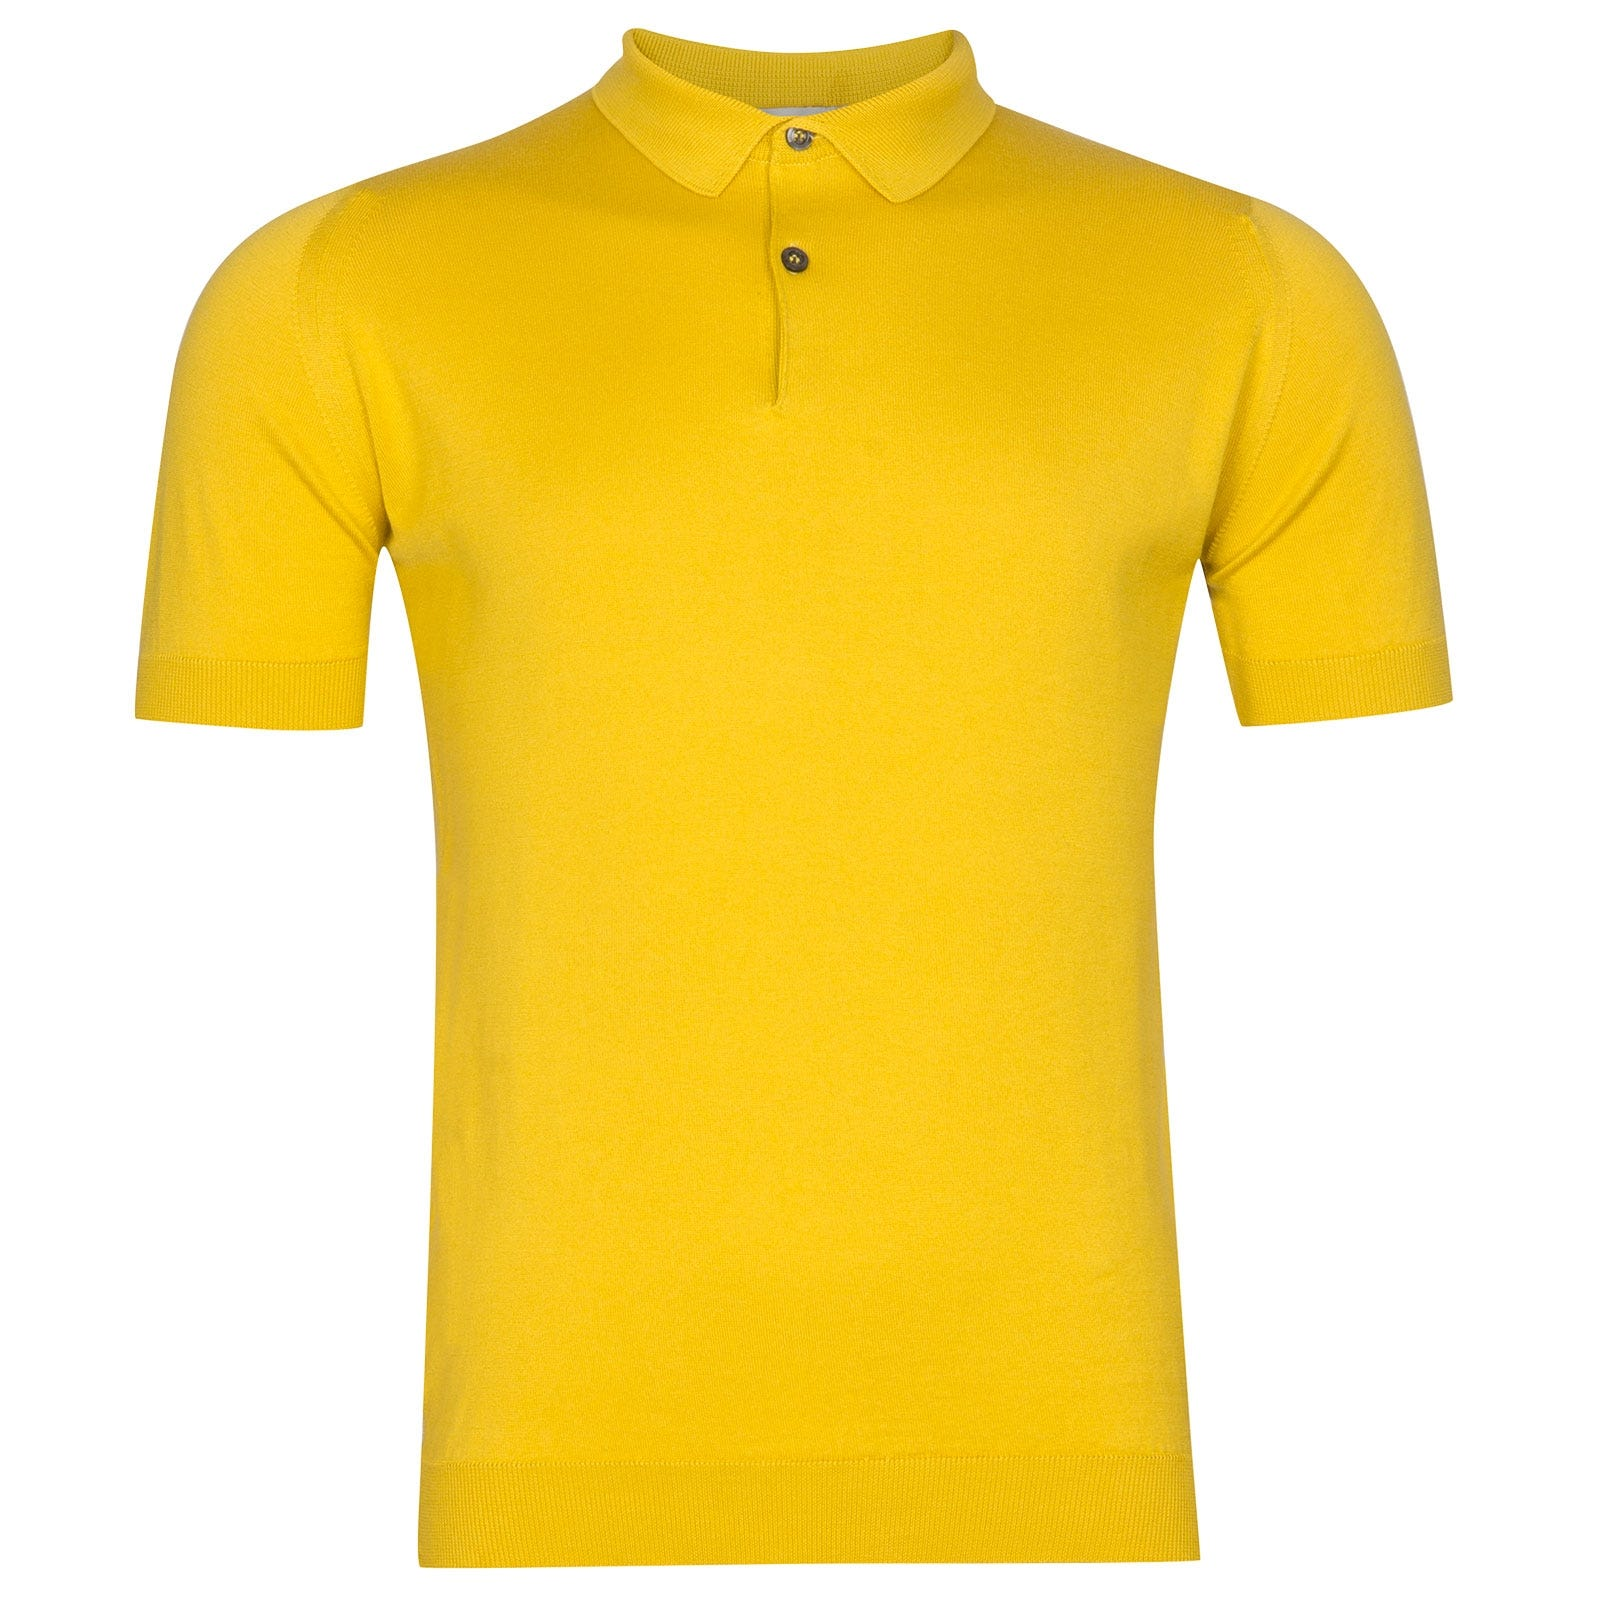 John Smedley Rhodes Sea Island Cotton Shirt in Tailors Yellow-L